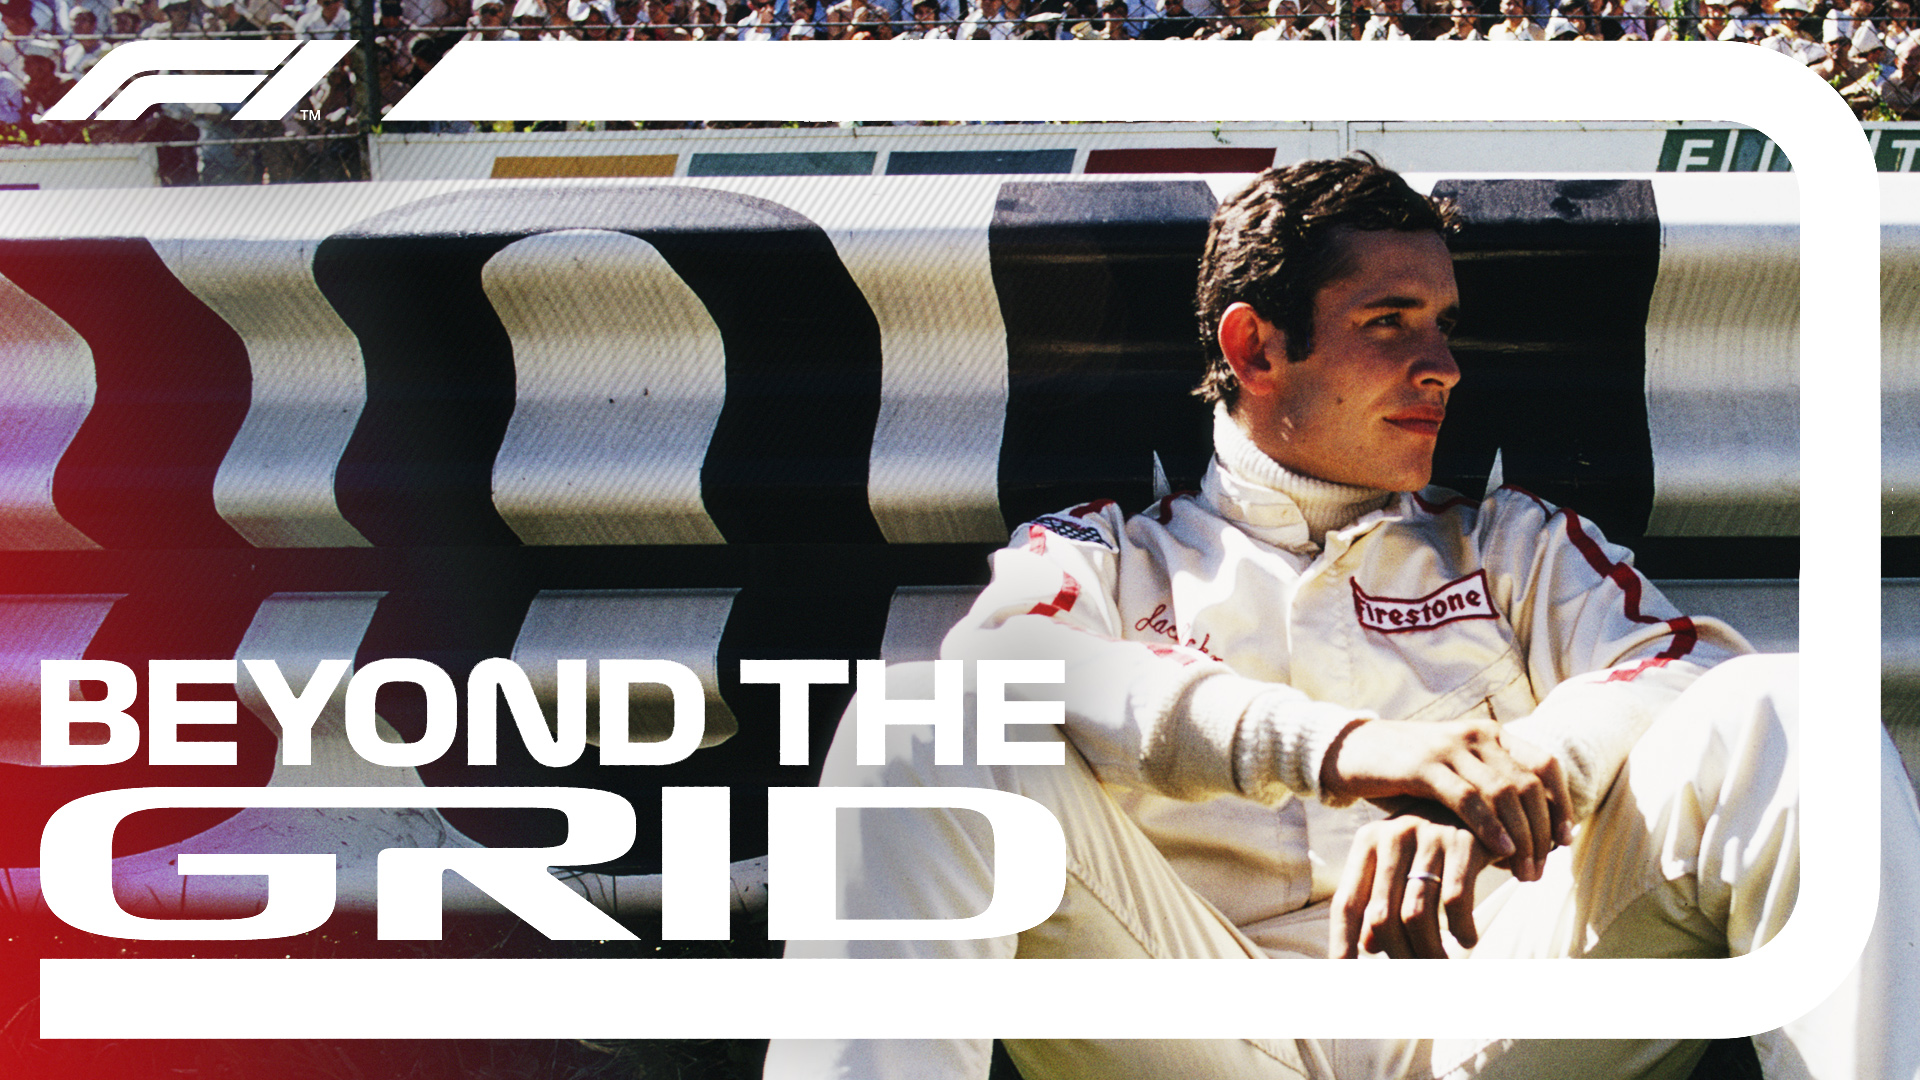 Jacky Ickx on Stewart, Brabham, the great Enzo Ferrari and more